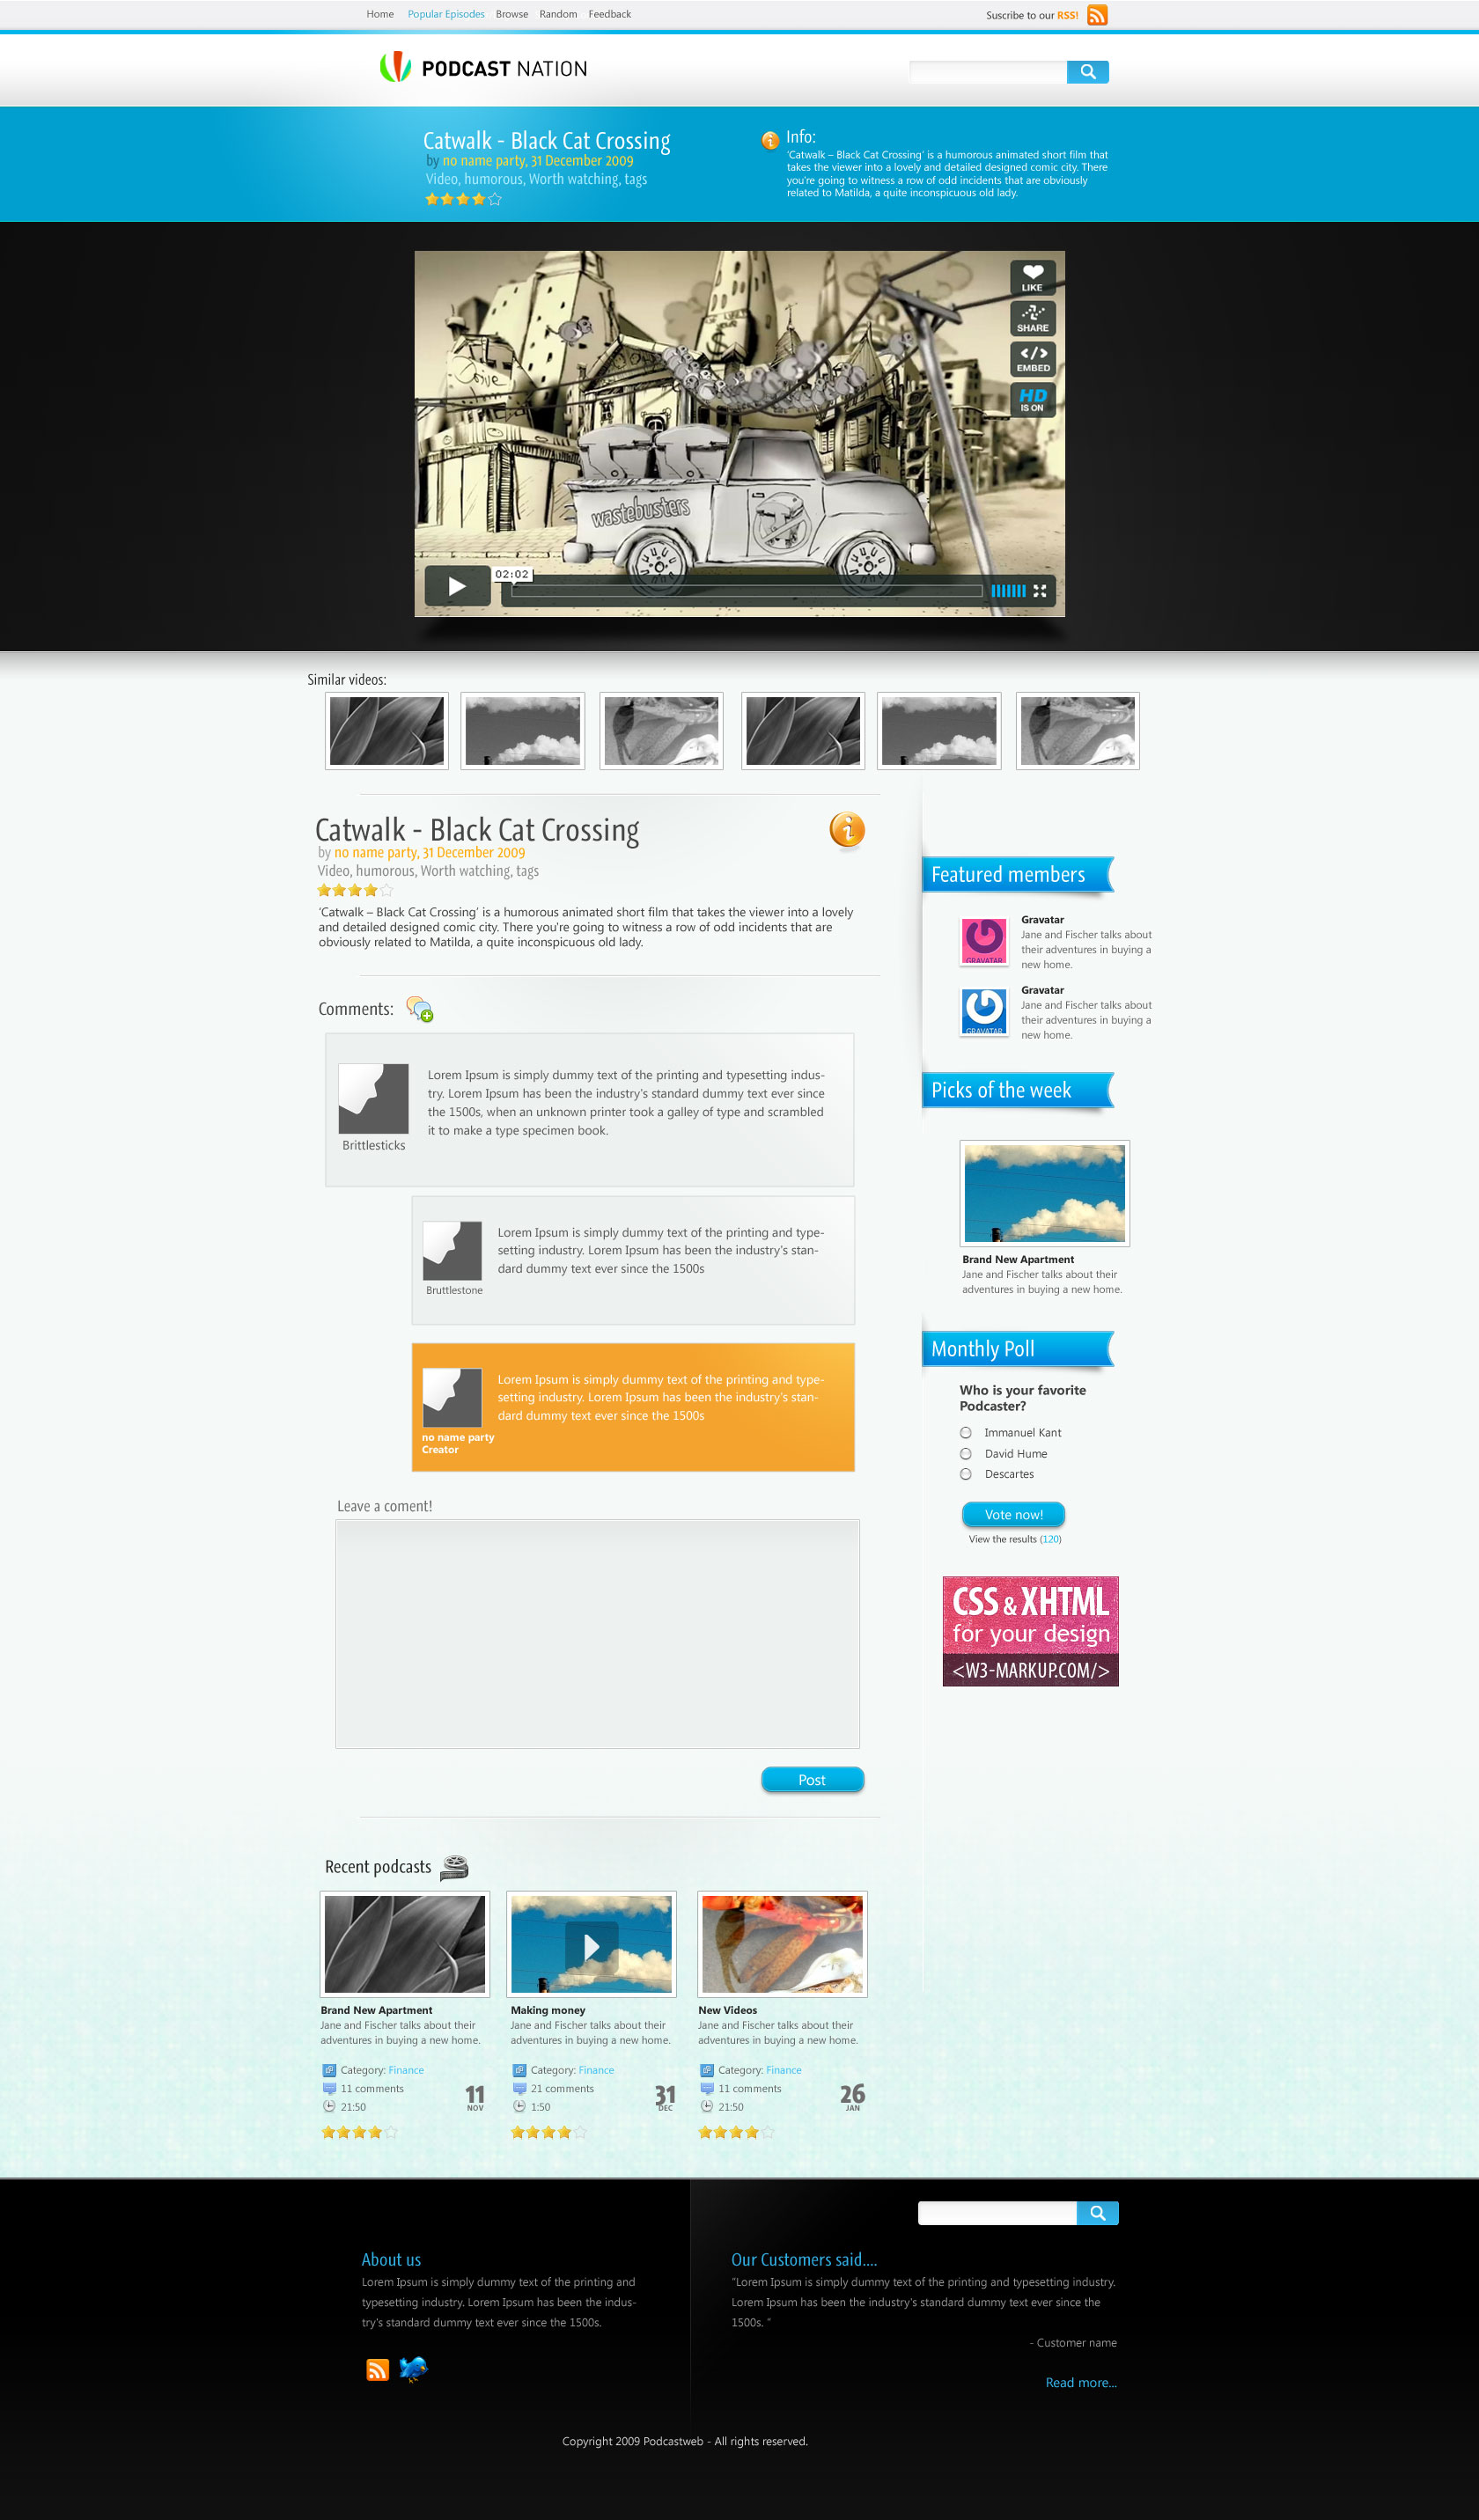 Cool 1 Page Website Template Tall 1 Year Experience Resume Format Free Download Square 10 Best Resume Samples 100 Dollar Bill Template Youthful 100 Template Fresh1099 Template Excel Podcast Template By Gyro   ThemeForest